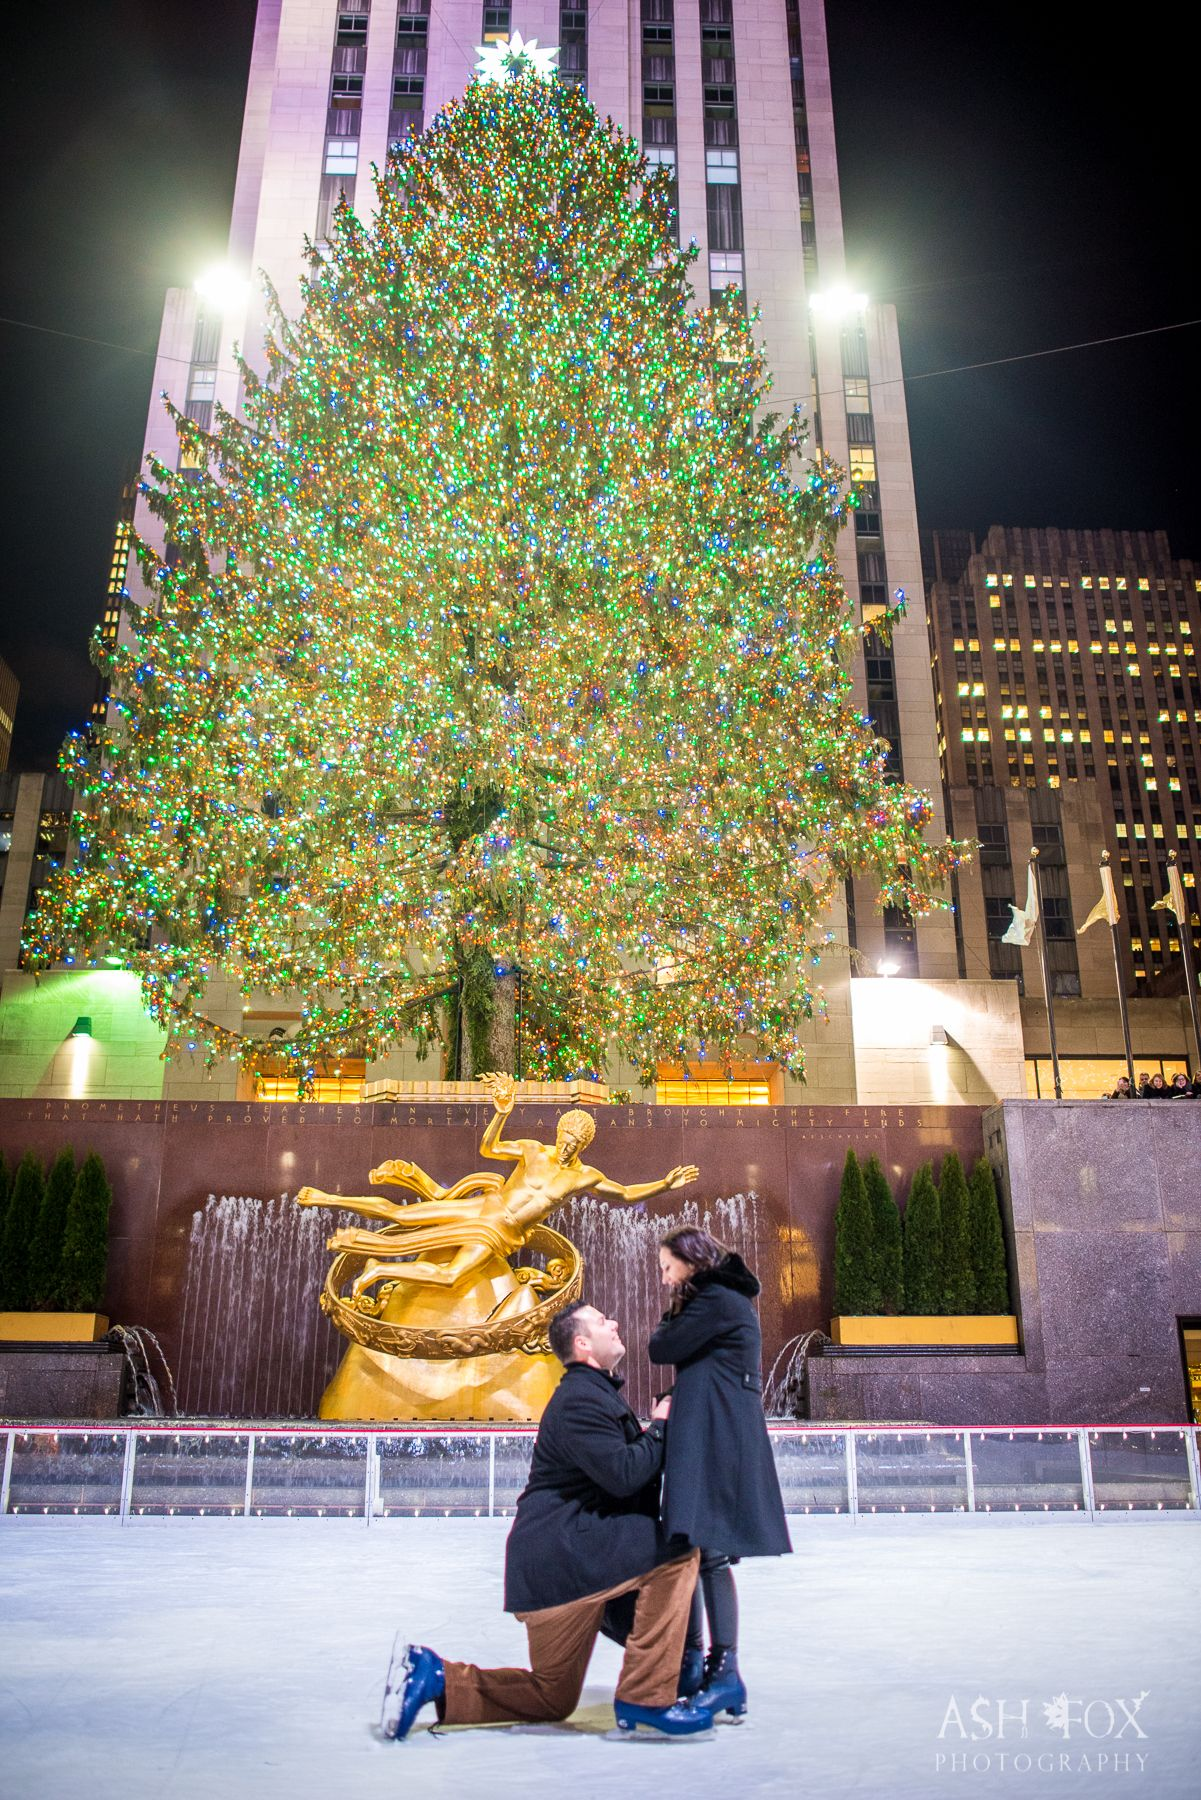 Pin by Ash Fox on NYC Winter & Christmas Proposals